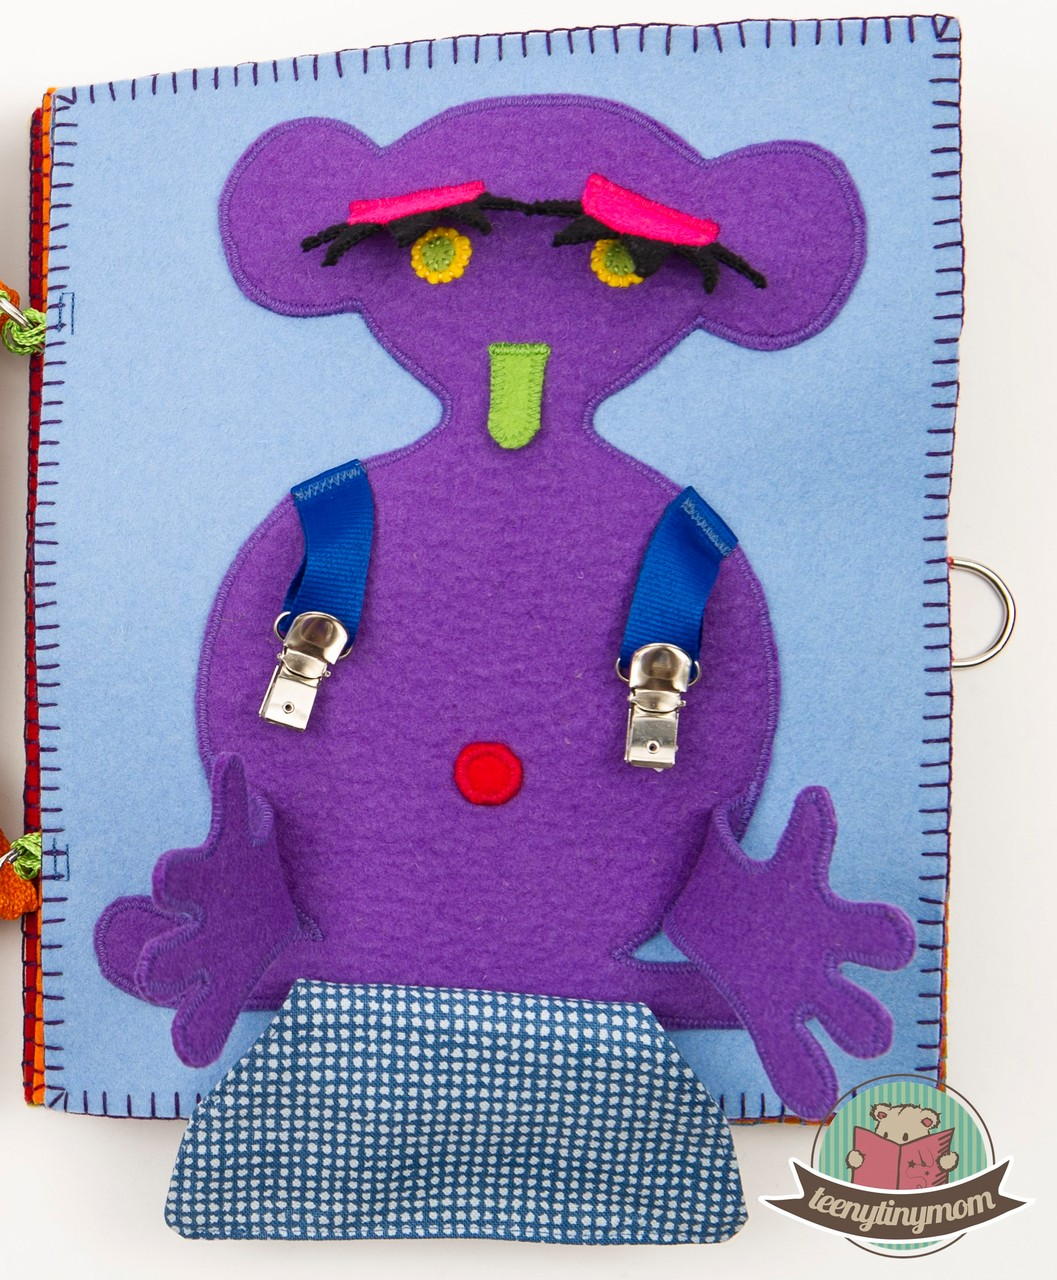 The suspender monster has a belly button hidden underneath its pants.